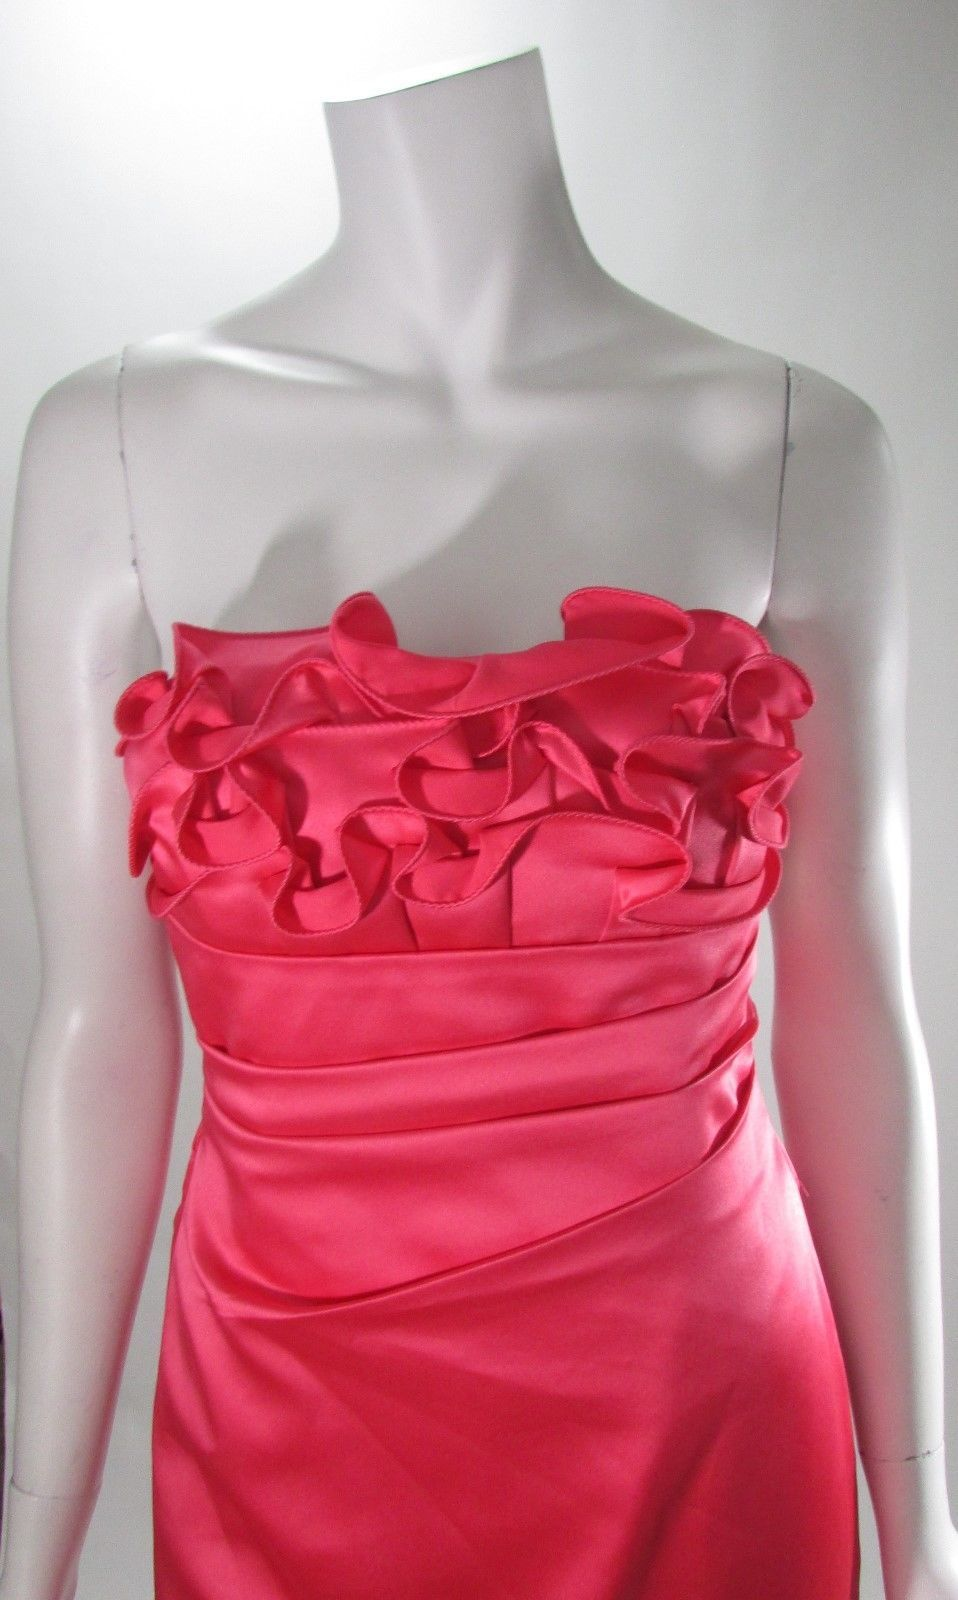 723a662e4a4 Phoebe Couture Coral Ruffle Botice Strapless and 10 similar items